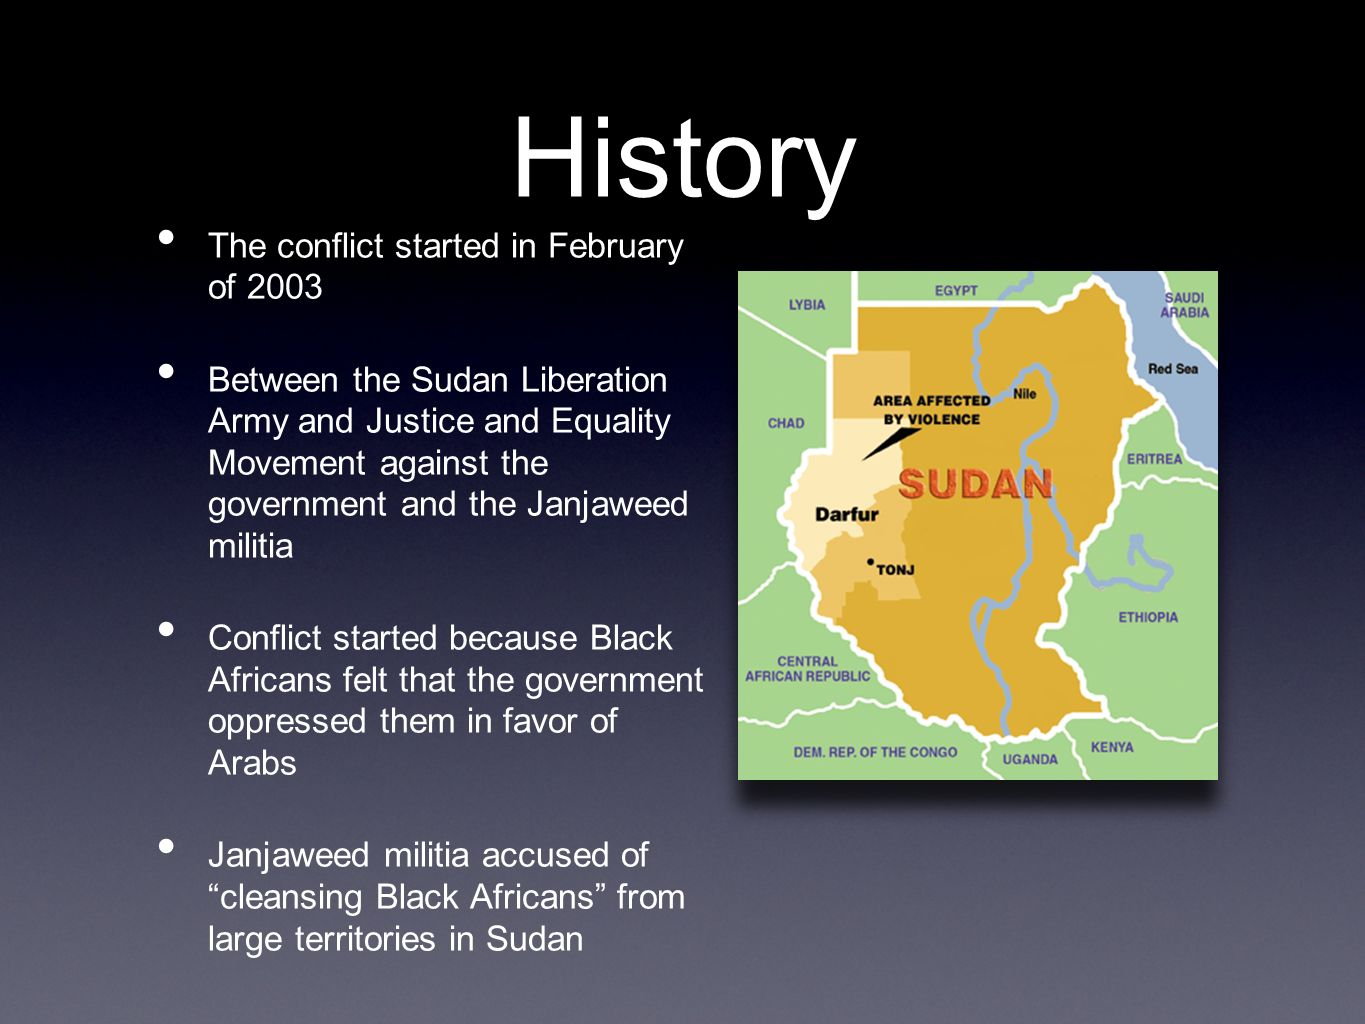 History The conflict started in February of 2003 Between the Sudan Liberation Army and Justice and Equality Movement against the government and the Janjaweed militia Conflict started because Black Africans felt that the government oppressed them in favor of Arabs Janjaweed militia accused of cleansing Black Africans from large territories in Sudan